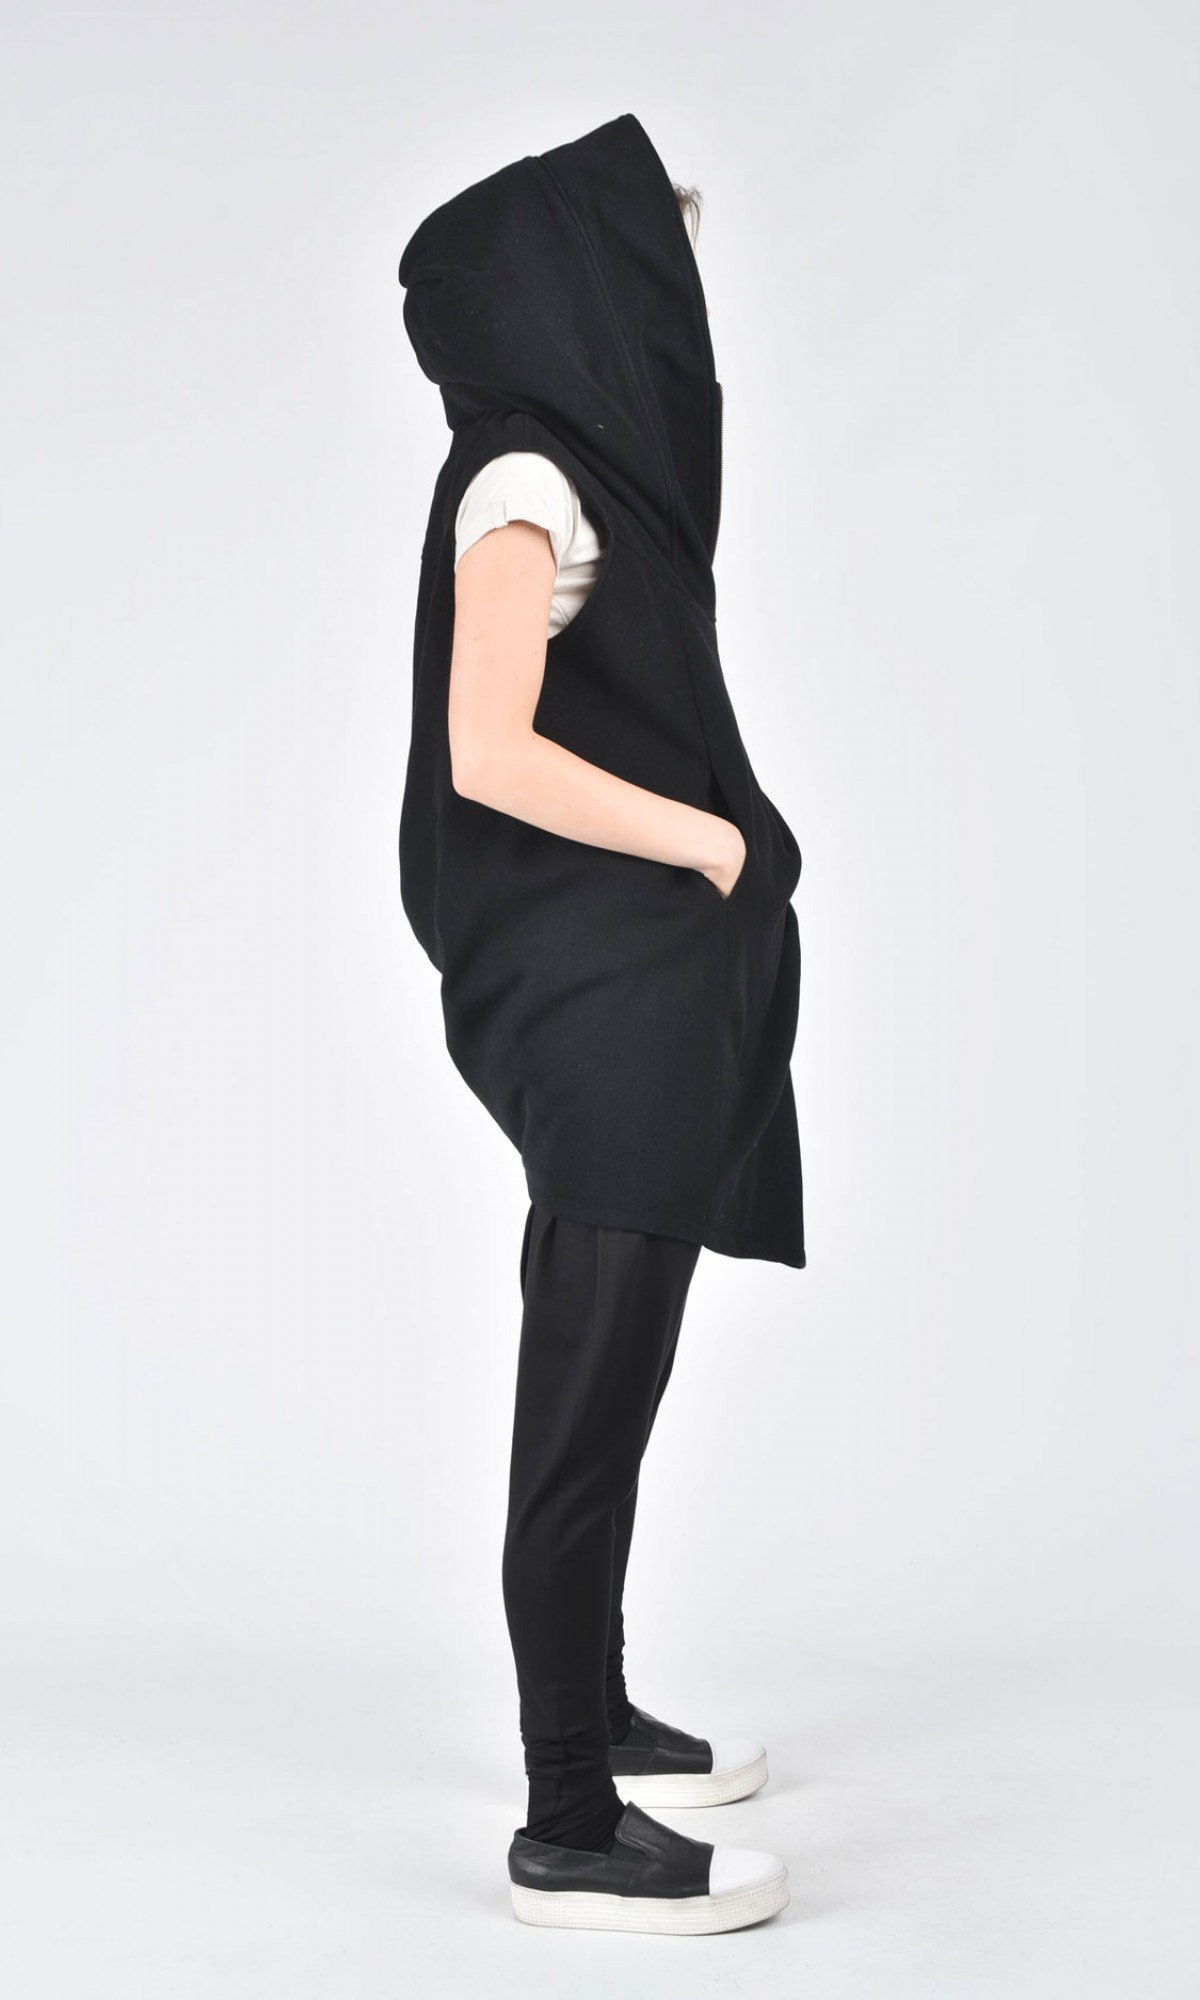 Asymmetric Black Hooded Sleeveless Coat A07197